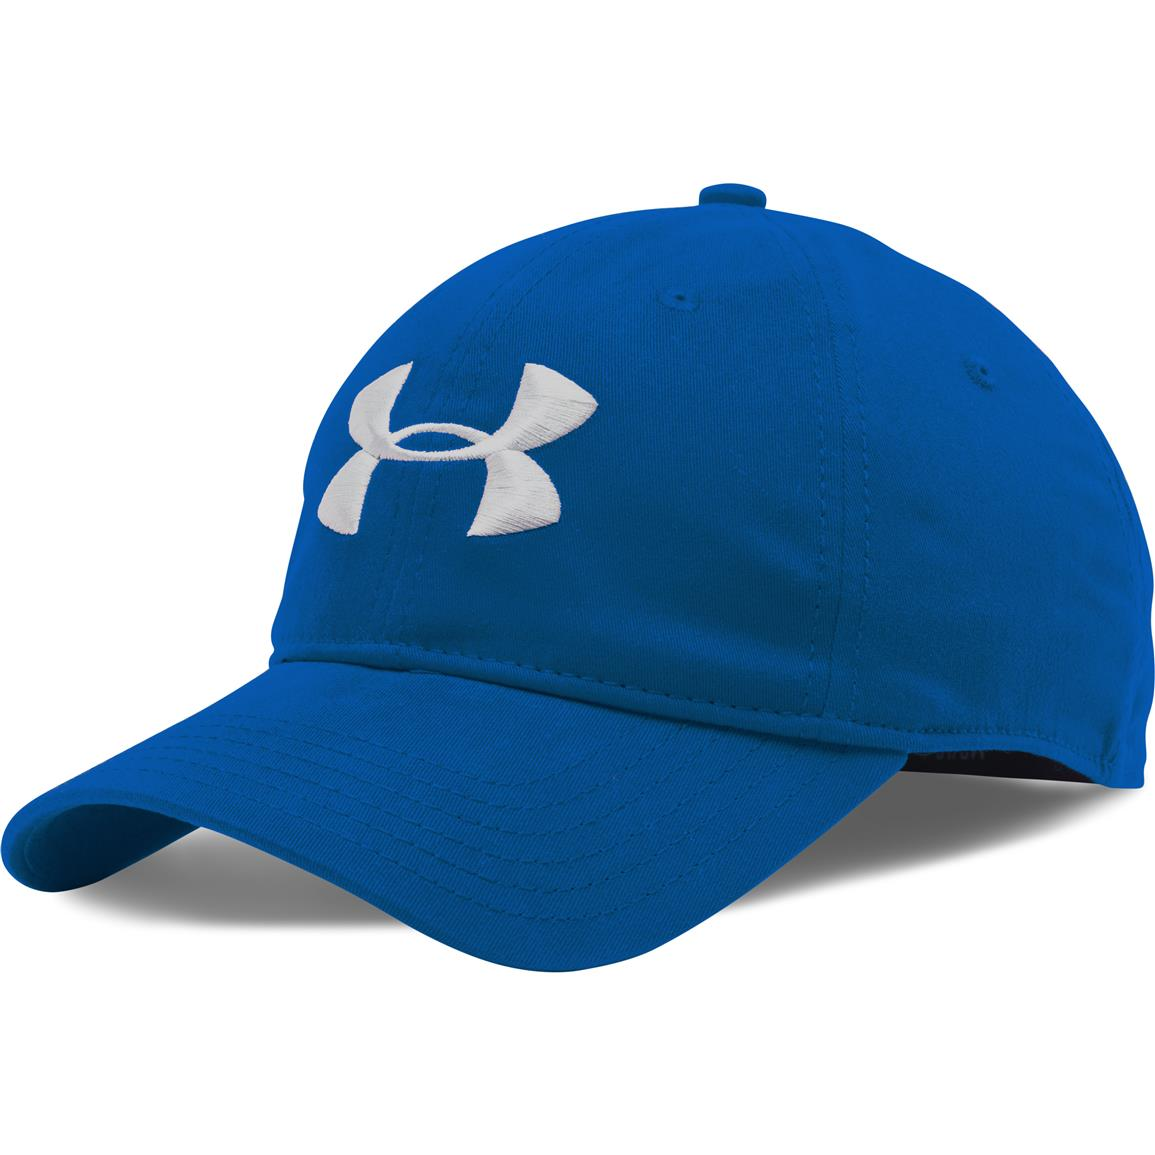 Under Armour Classic Outdoor Hat, Superior Blue